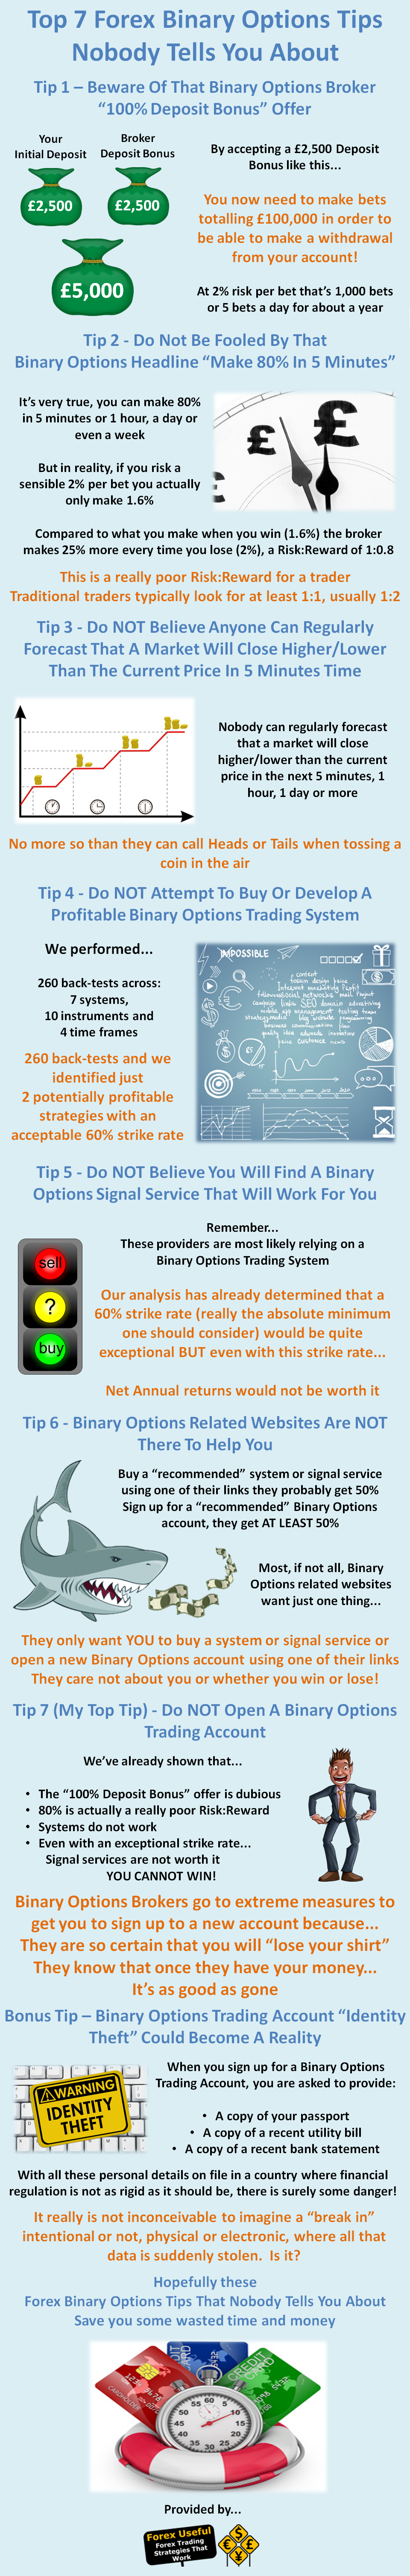 Forex binary options trading strategies